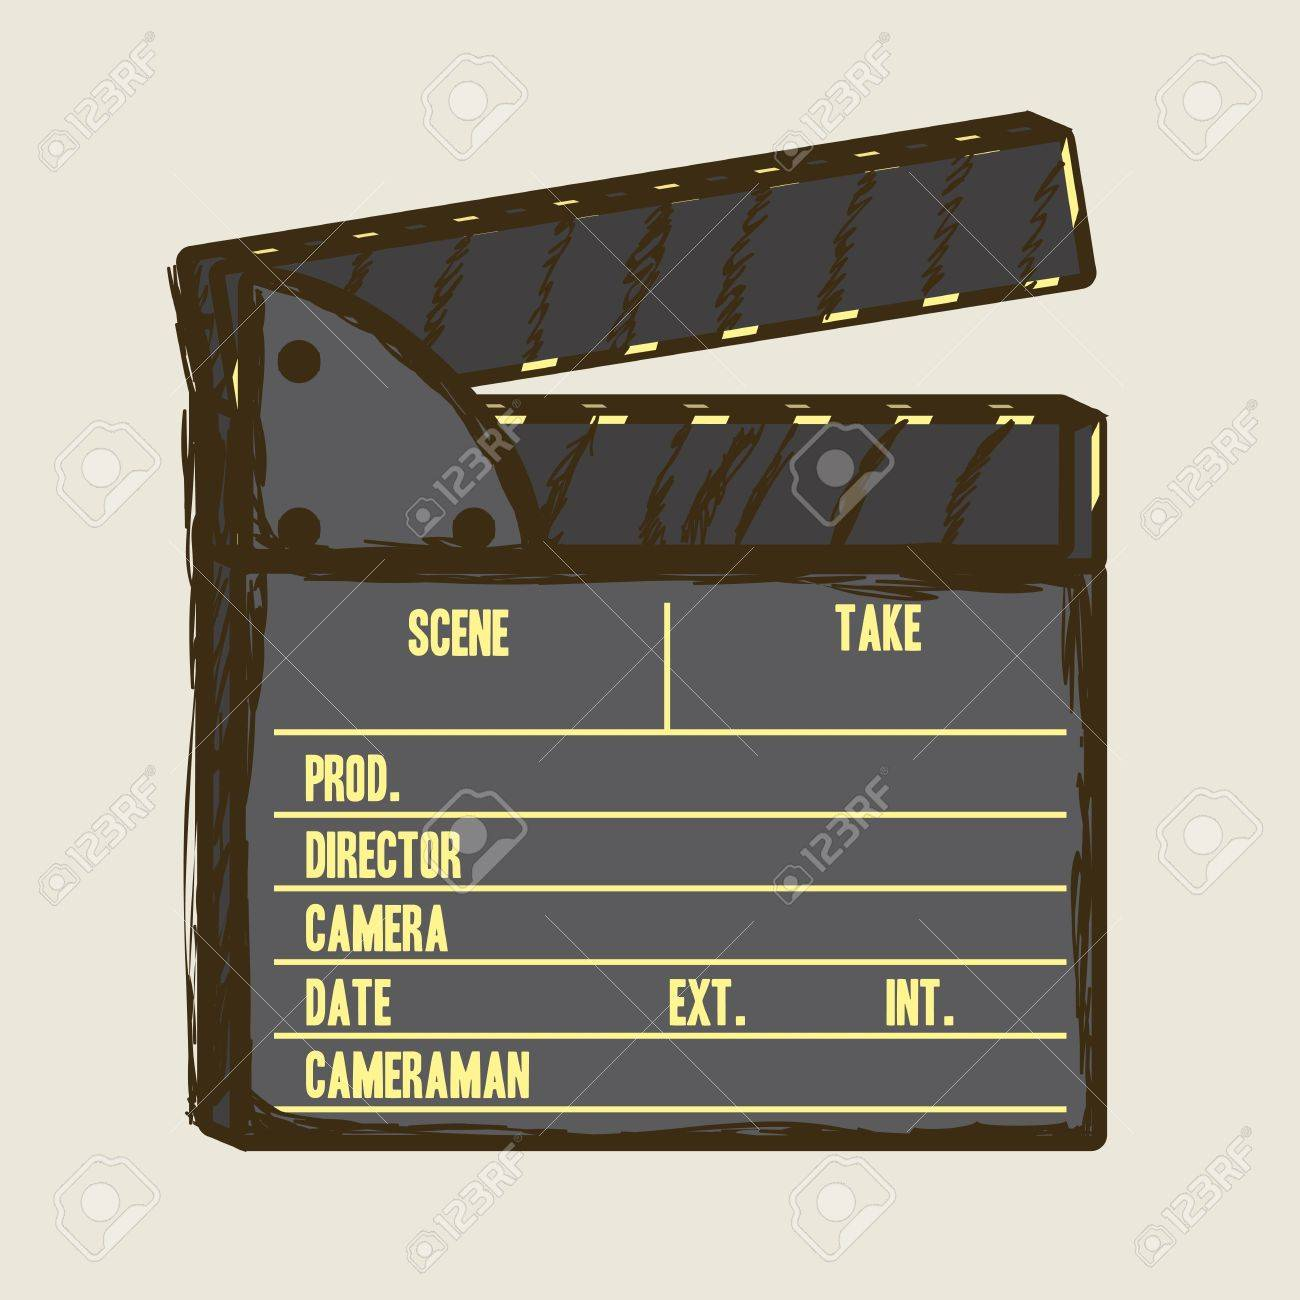 Illustration of cine icon, slate of director Film, vector illustration Stock Vector - 18954232